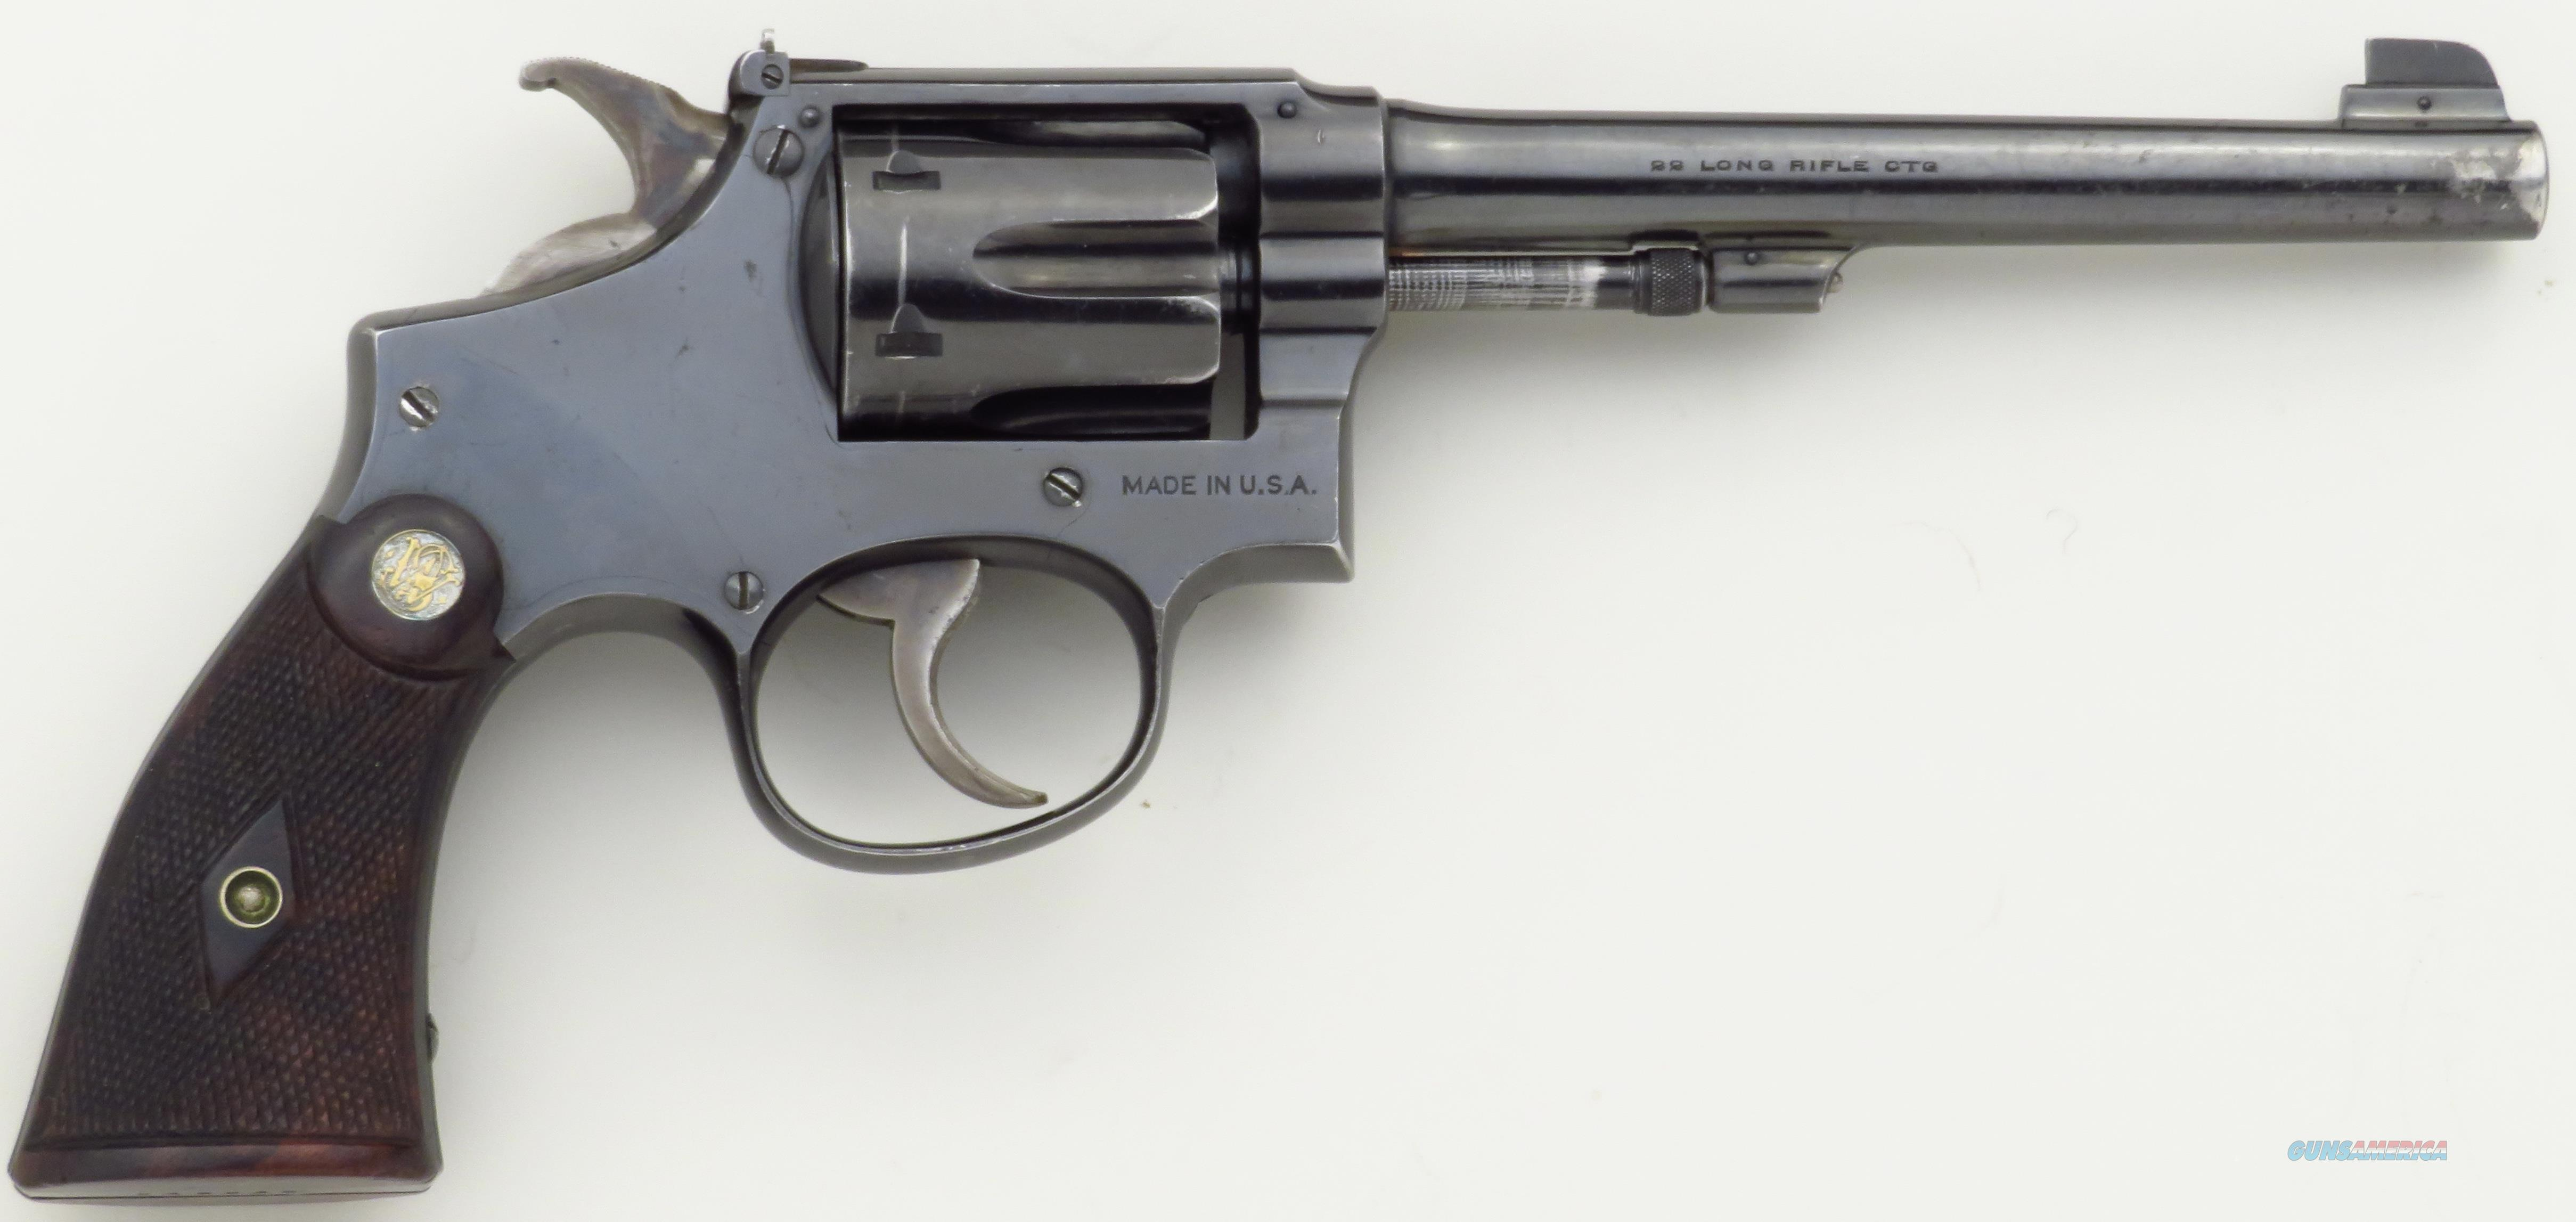 Smith & Wesson K-22 Outdoorsman 1st Model .22 LR, 6-inch, 649849, 80% original condition  Guns > Pistols > Smith & Wesson Revolvers > Med. Frame ( K/L )